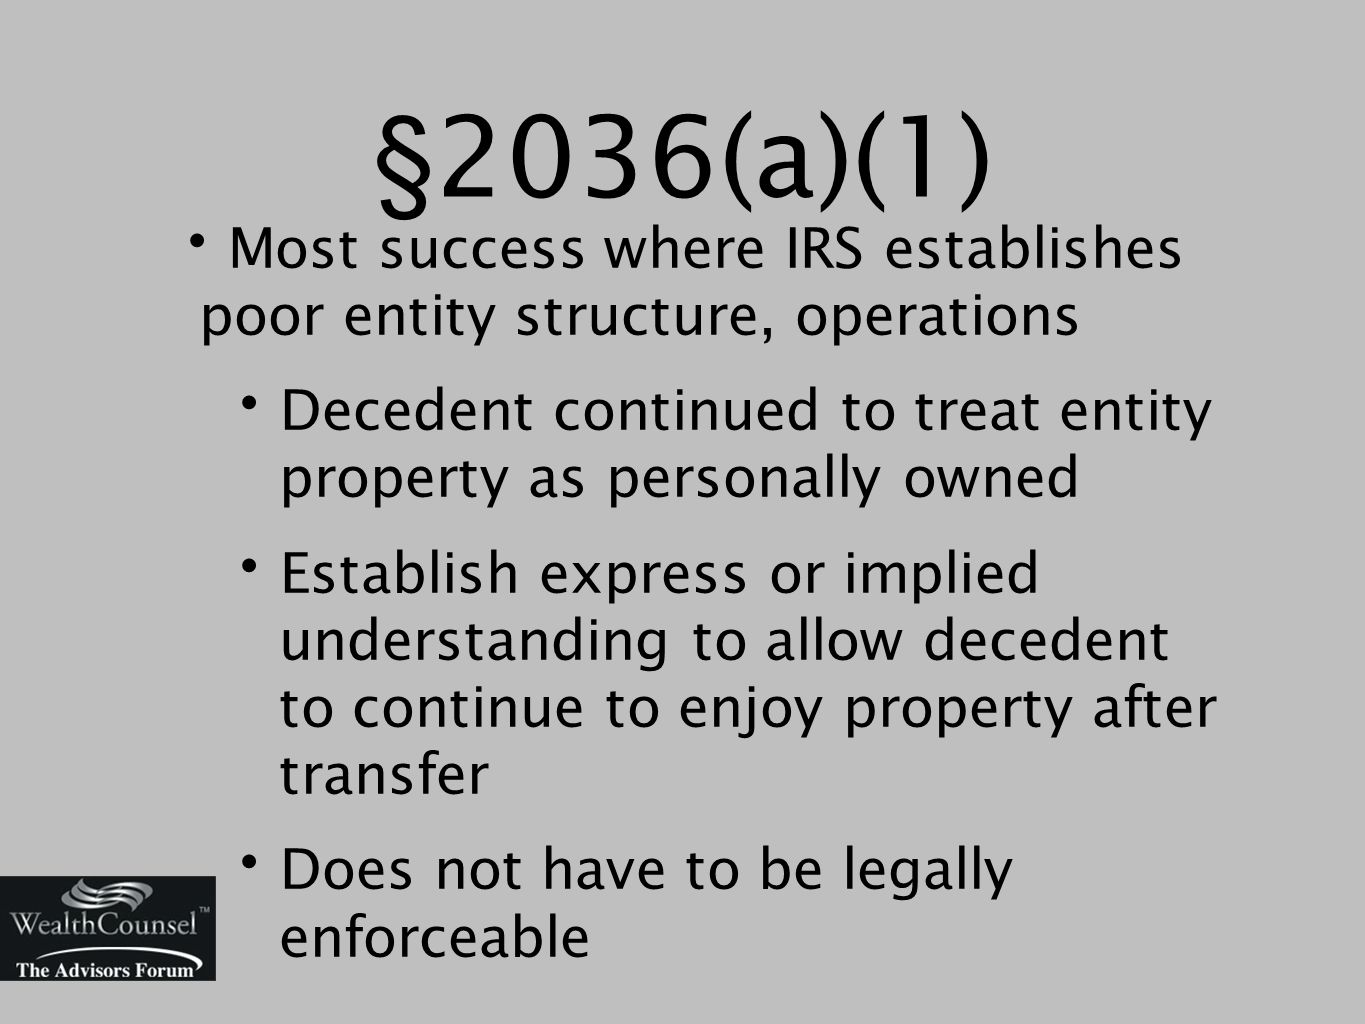 §2036(a)(1) Most success where IRS establishes poor entity structure, operations Decedent continued to treat entity property as personally owned Establish express or implied understanding to allow decedent to continue to enjoy property after transfer Does not have to be legally enforceable